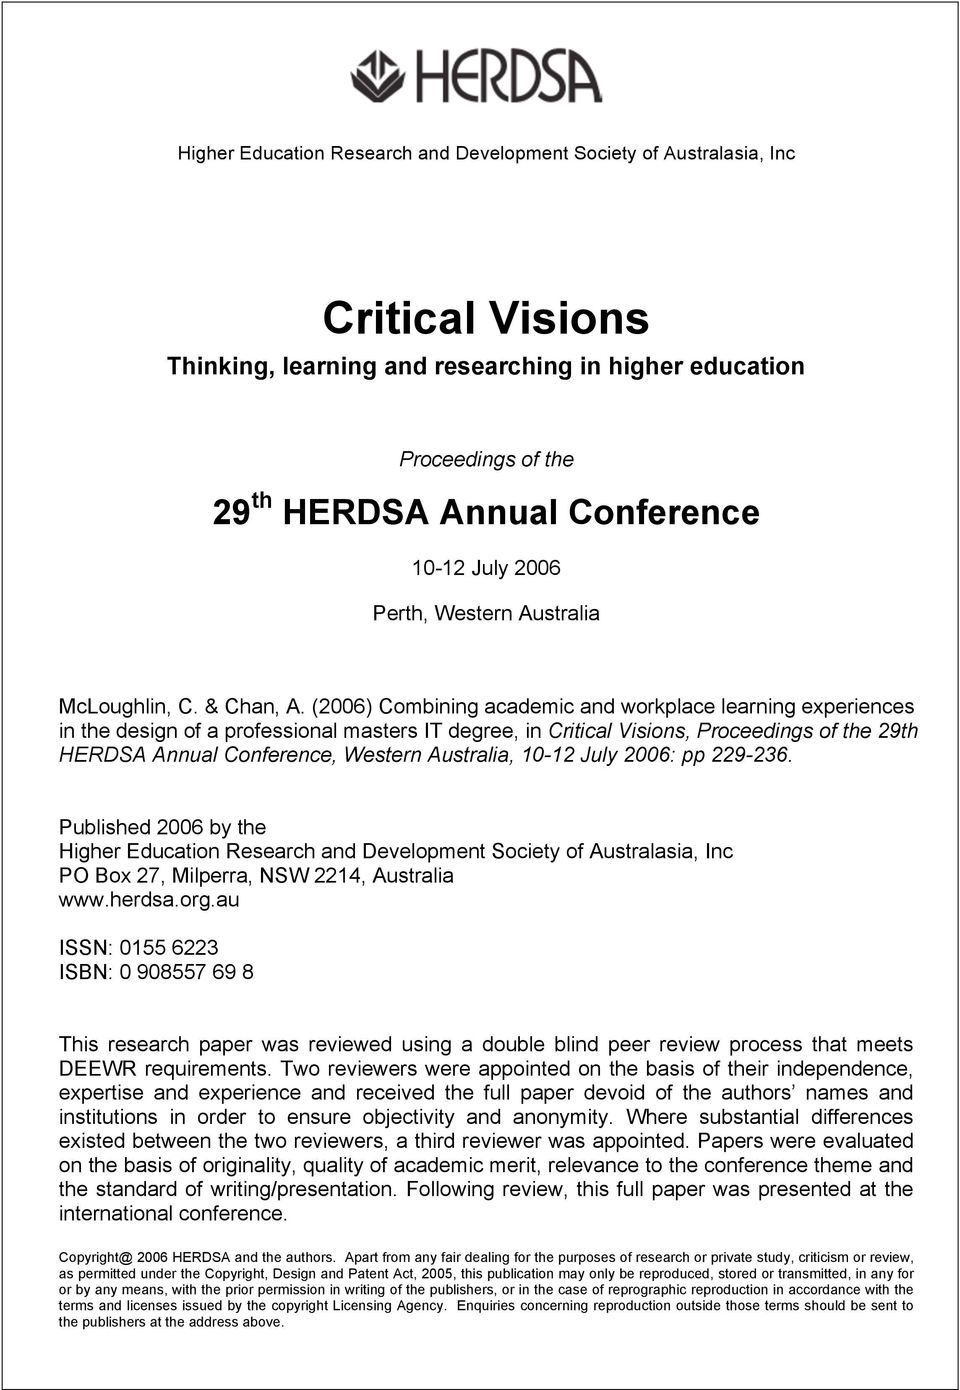 (2006) Combining academic and workplace learning experiences in the design of a professional masters IT degree, in Critical Visions, Proceedings of the 29th HERDSA Annual Conference, Western